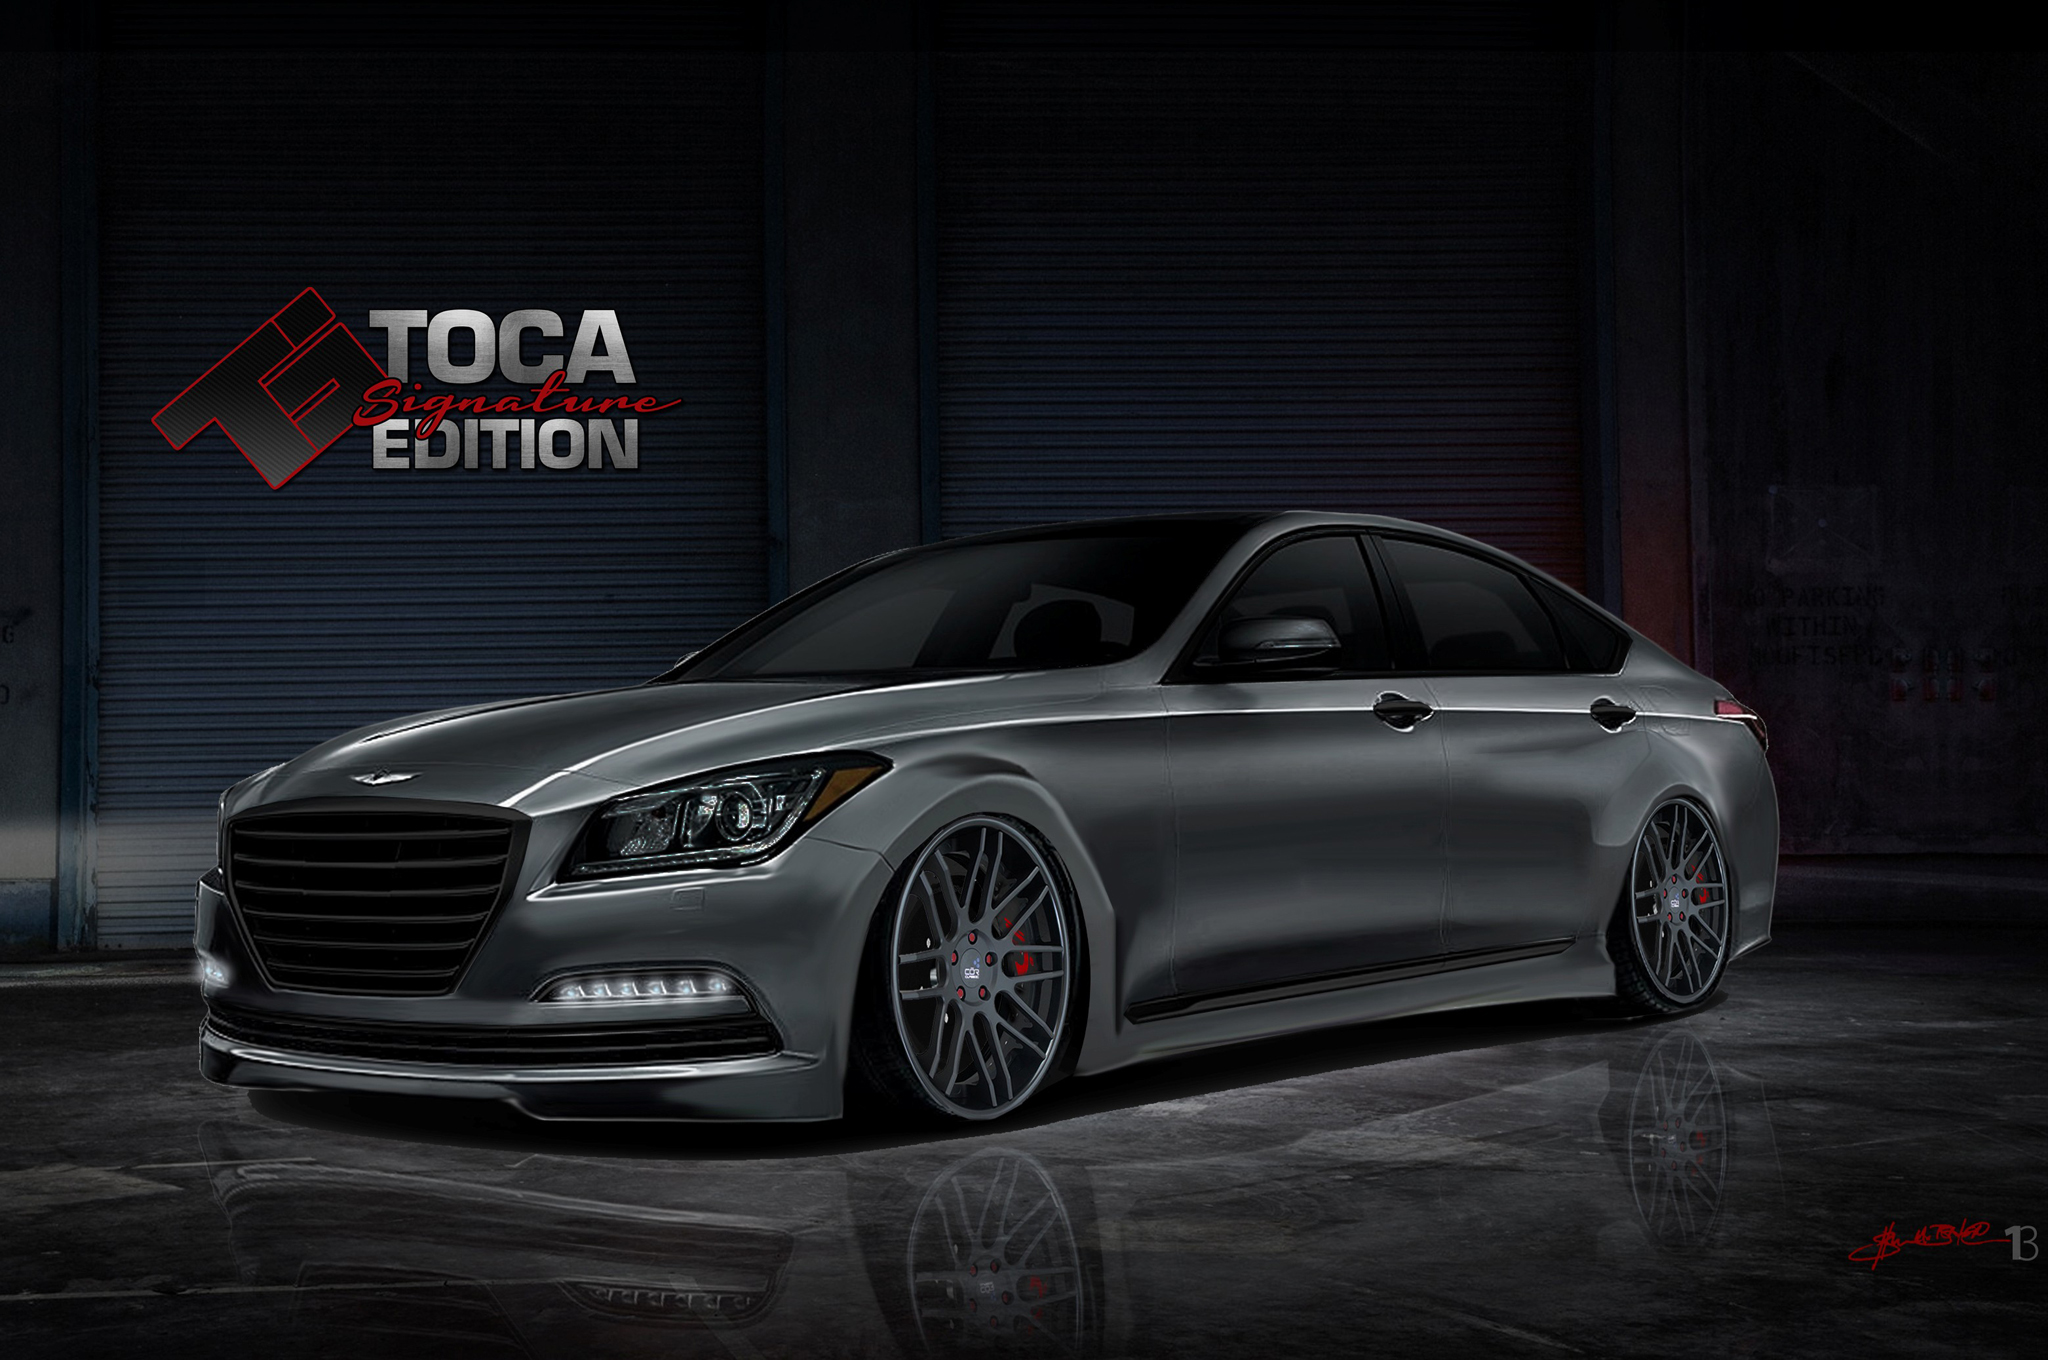 Toca Tuned 2015 Hyundai Genesis Sedan Makes 600 HP For SEMA